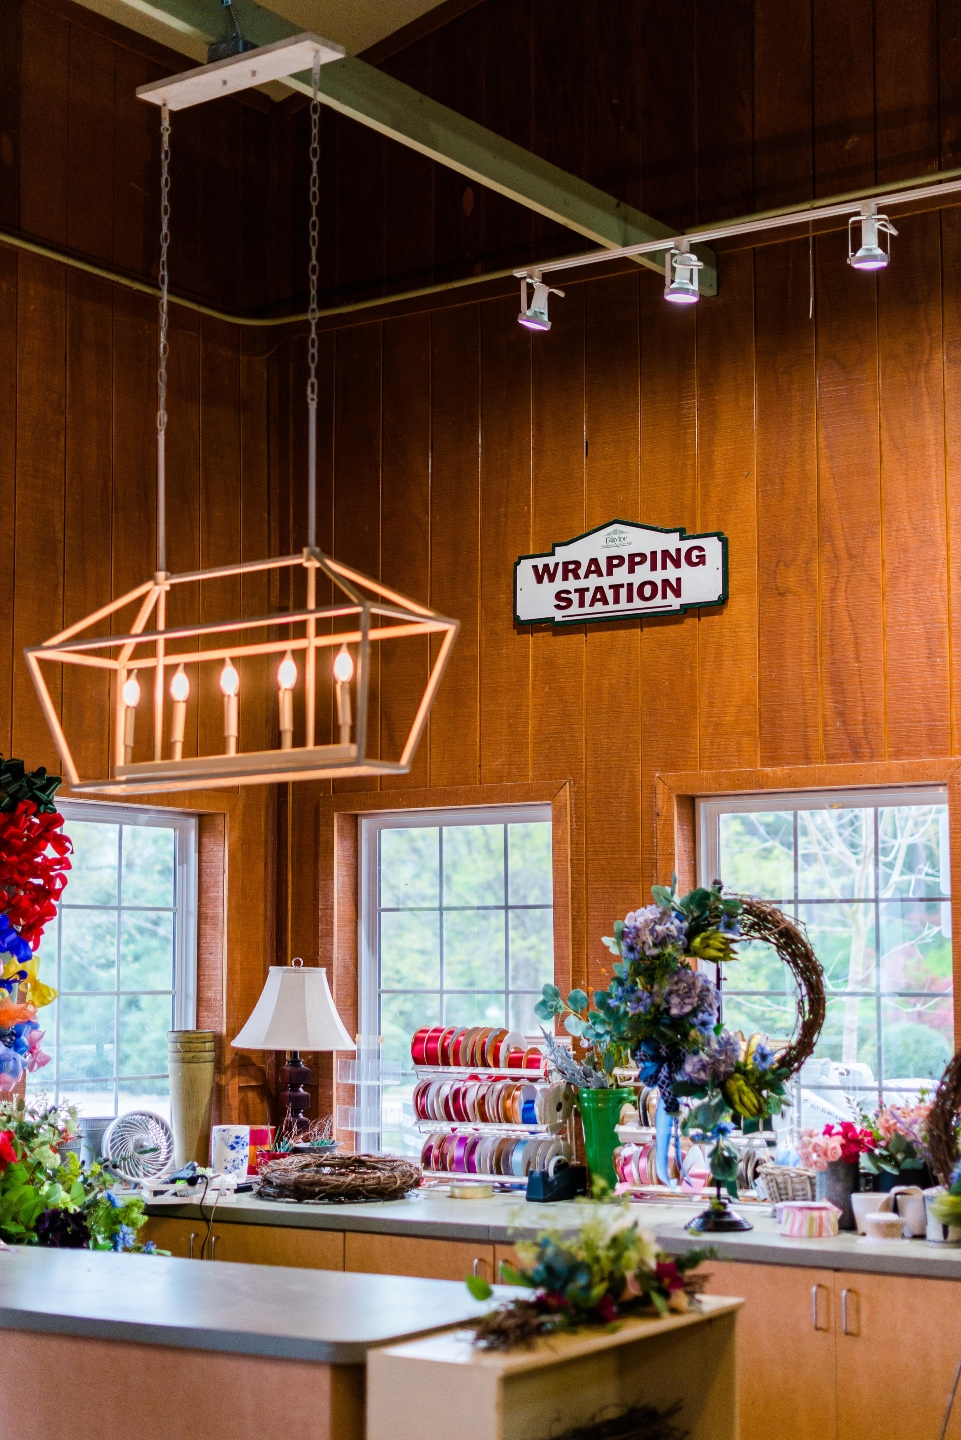 5 Spring Planting Tips with Fairview Garden Center - I'm Fixin' To - @imfixintoblog |Best Plants to Plant in Spring by popular NC lifestyle blog: image of a wrapping stations.